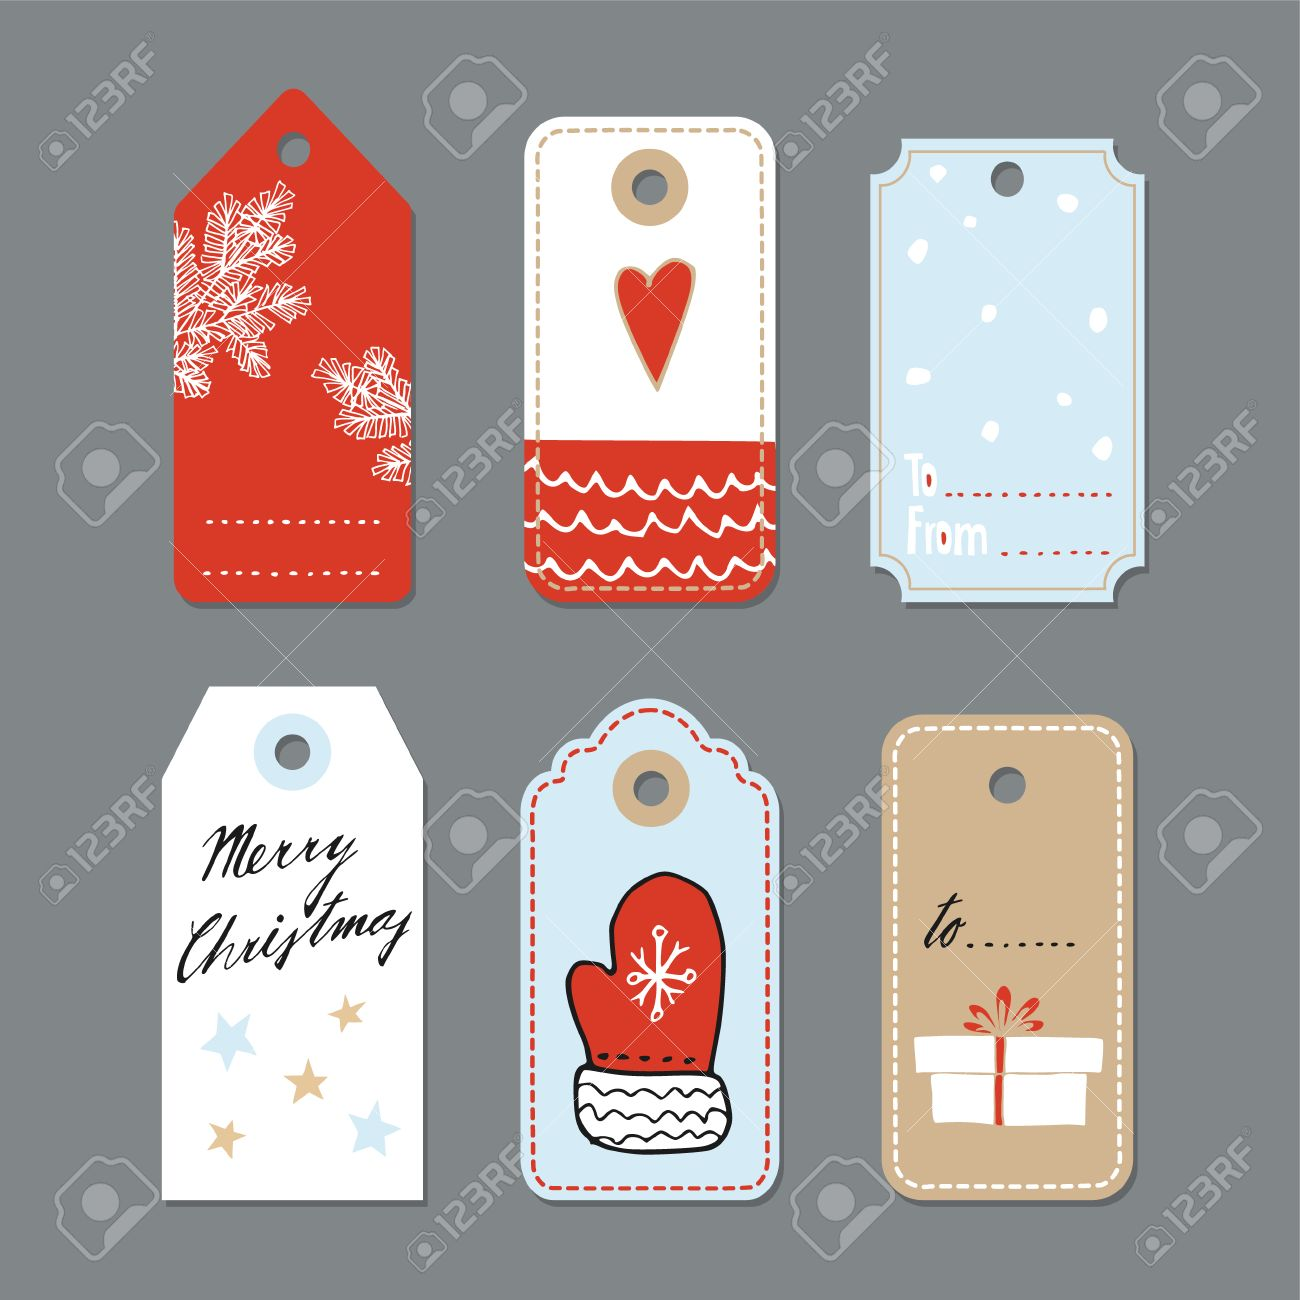 Set of cute christmas gift tags, labels, hand drawn illustrations, flat design, isolated vector objects - 48105437